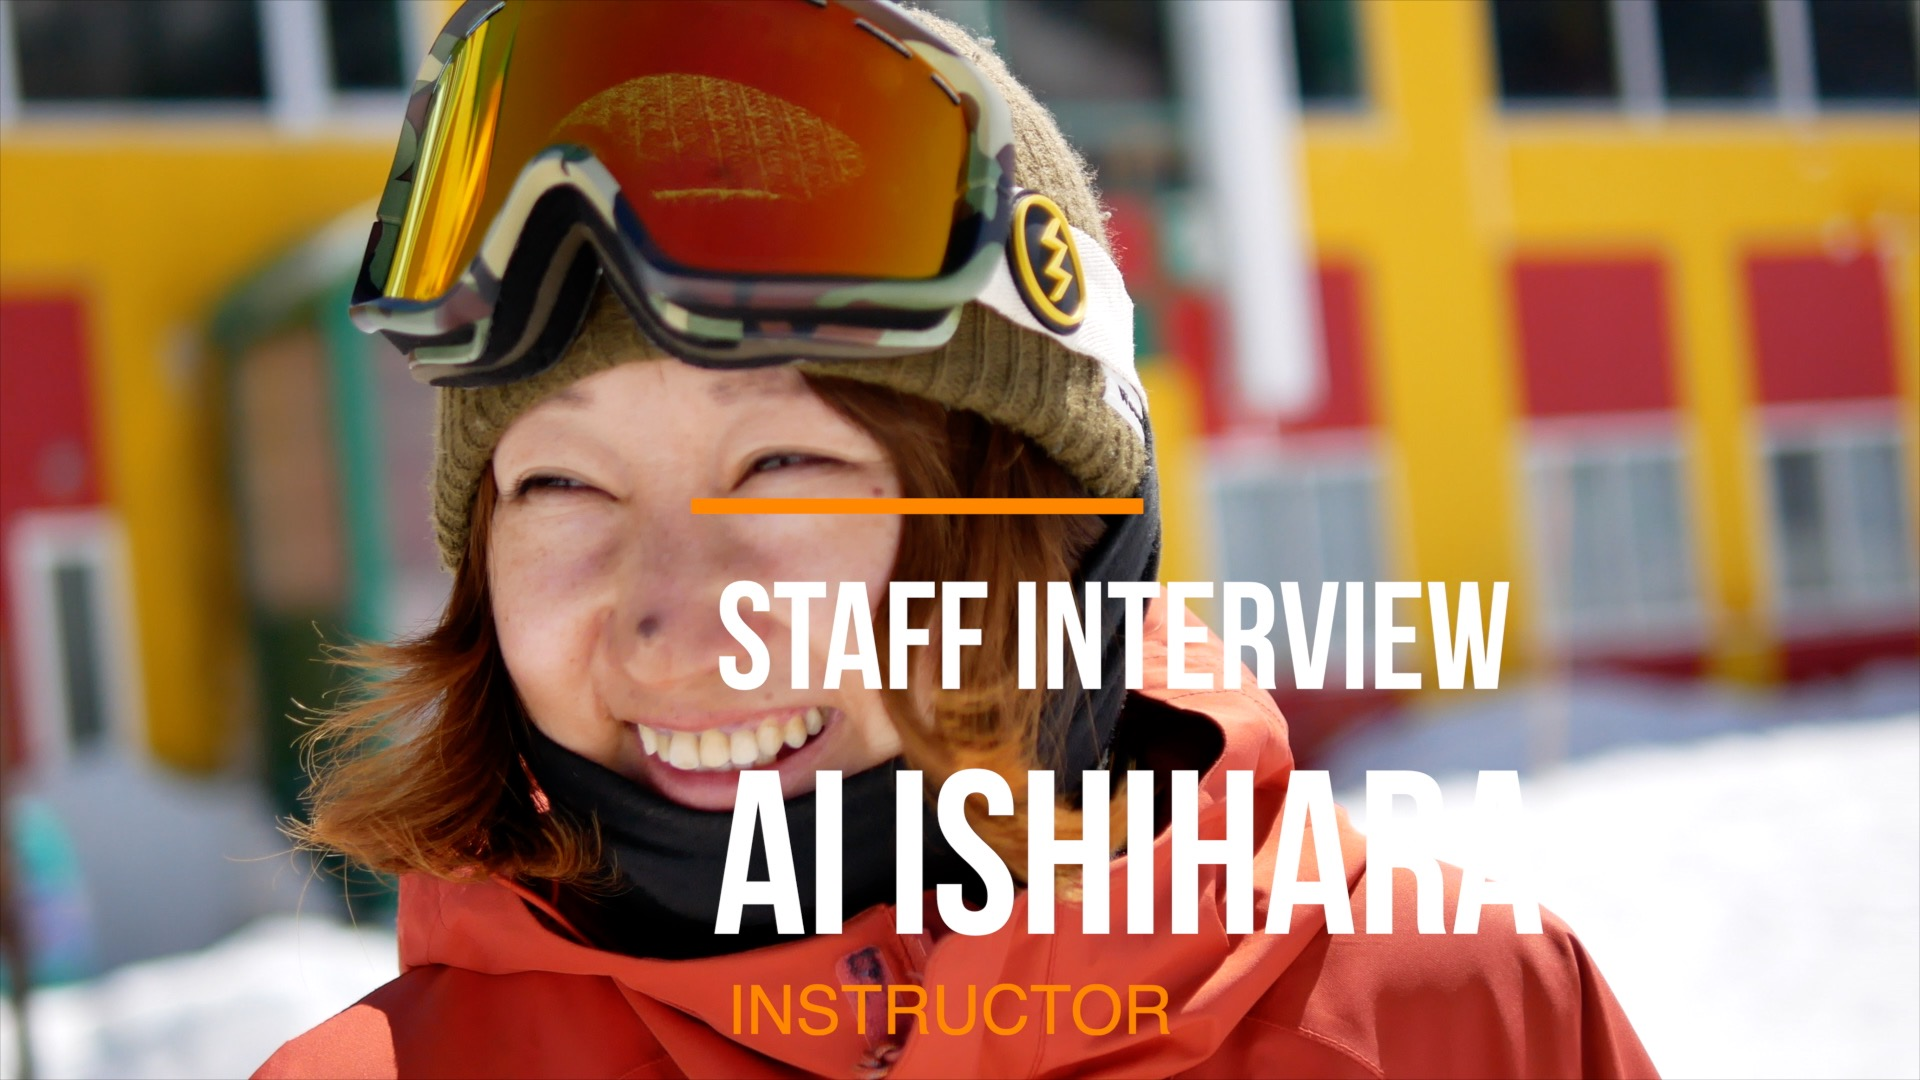 STAFF INTERVIEW [LALA]